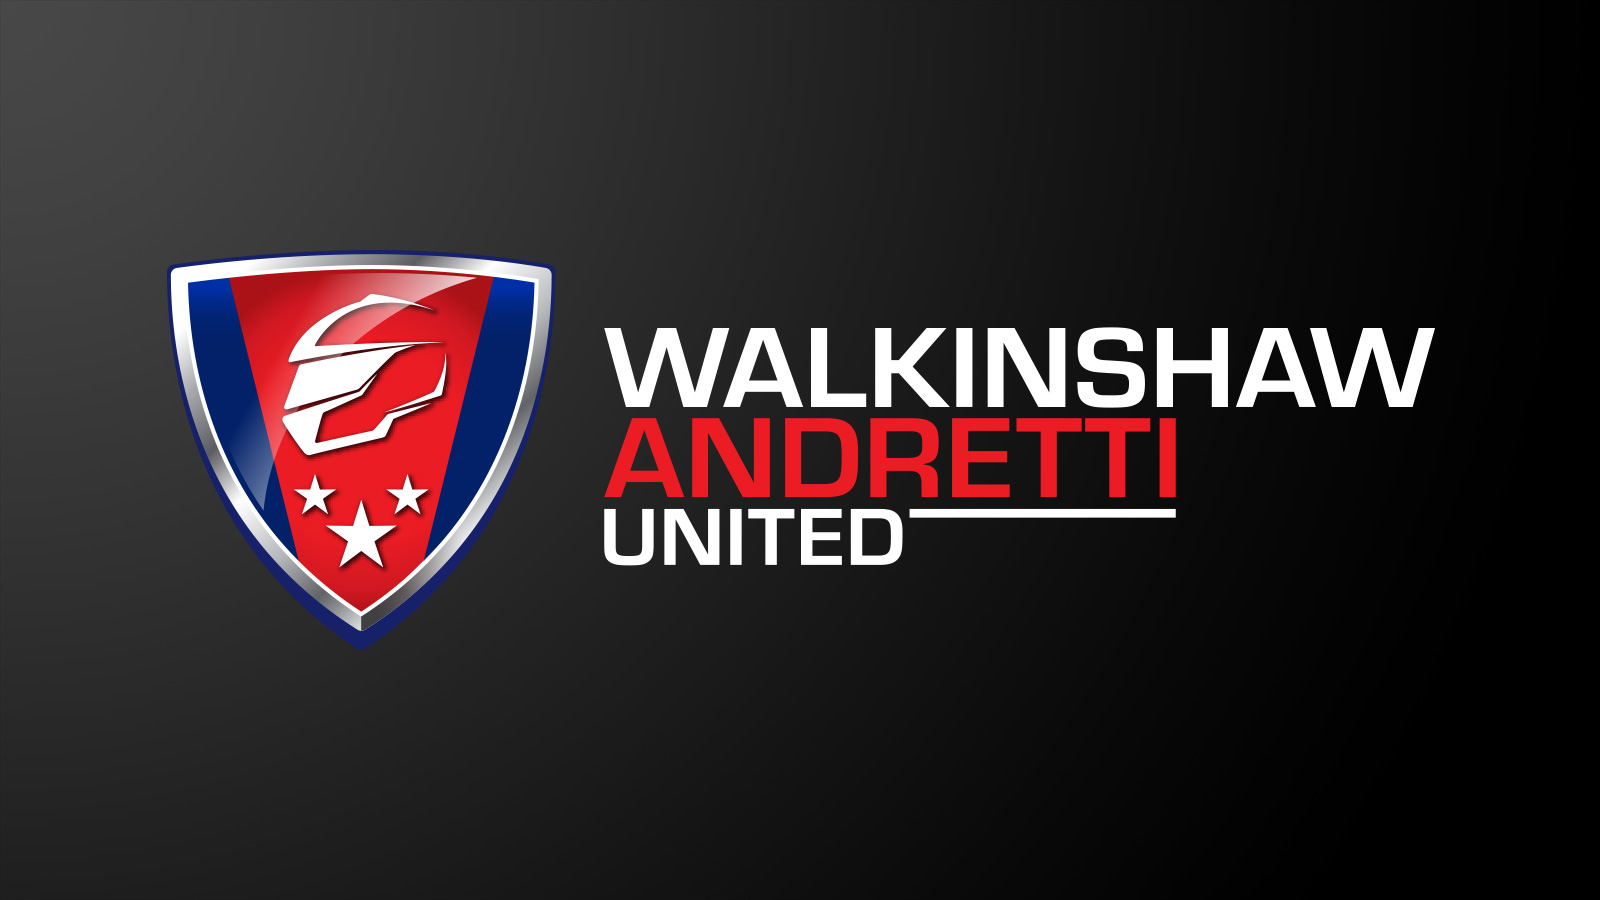 Walkinshaw Andretti United.